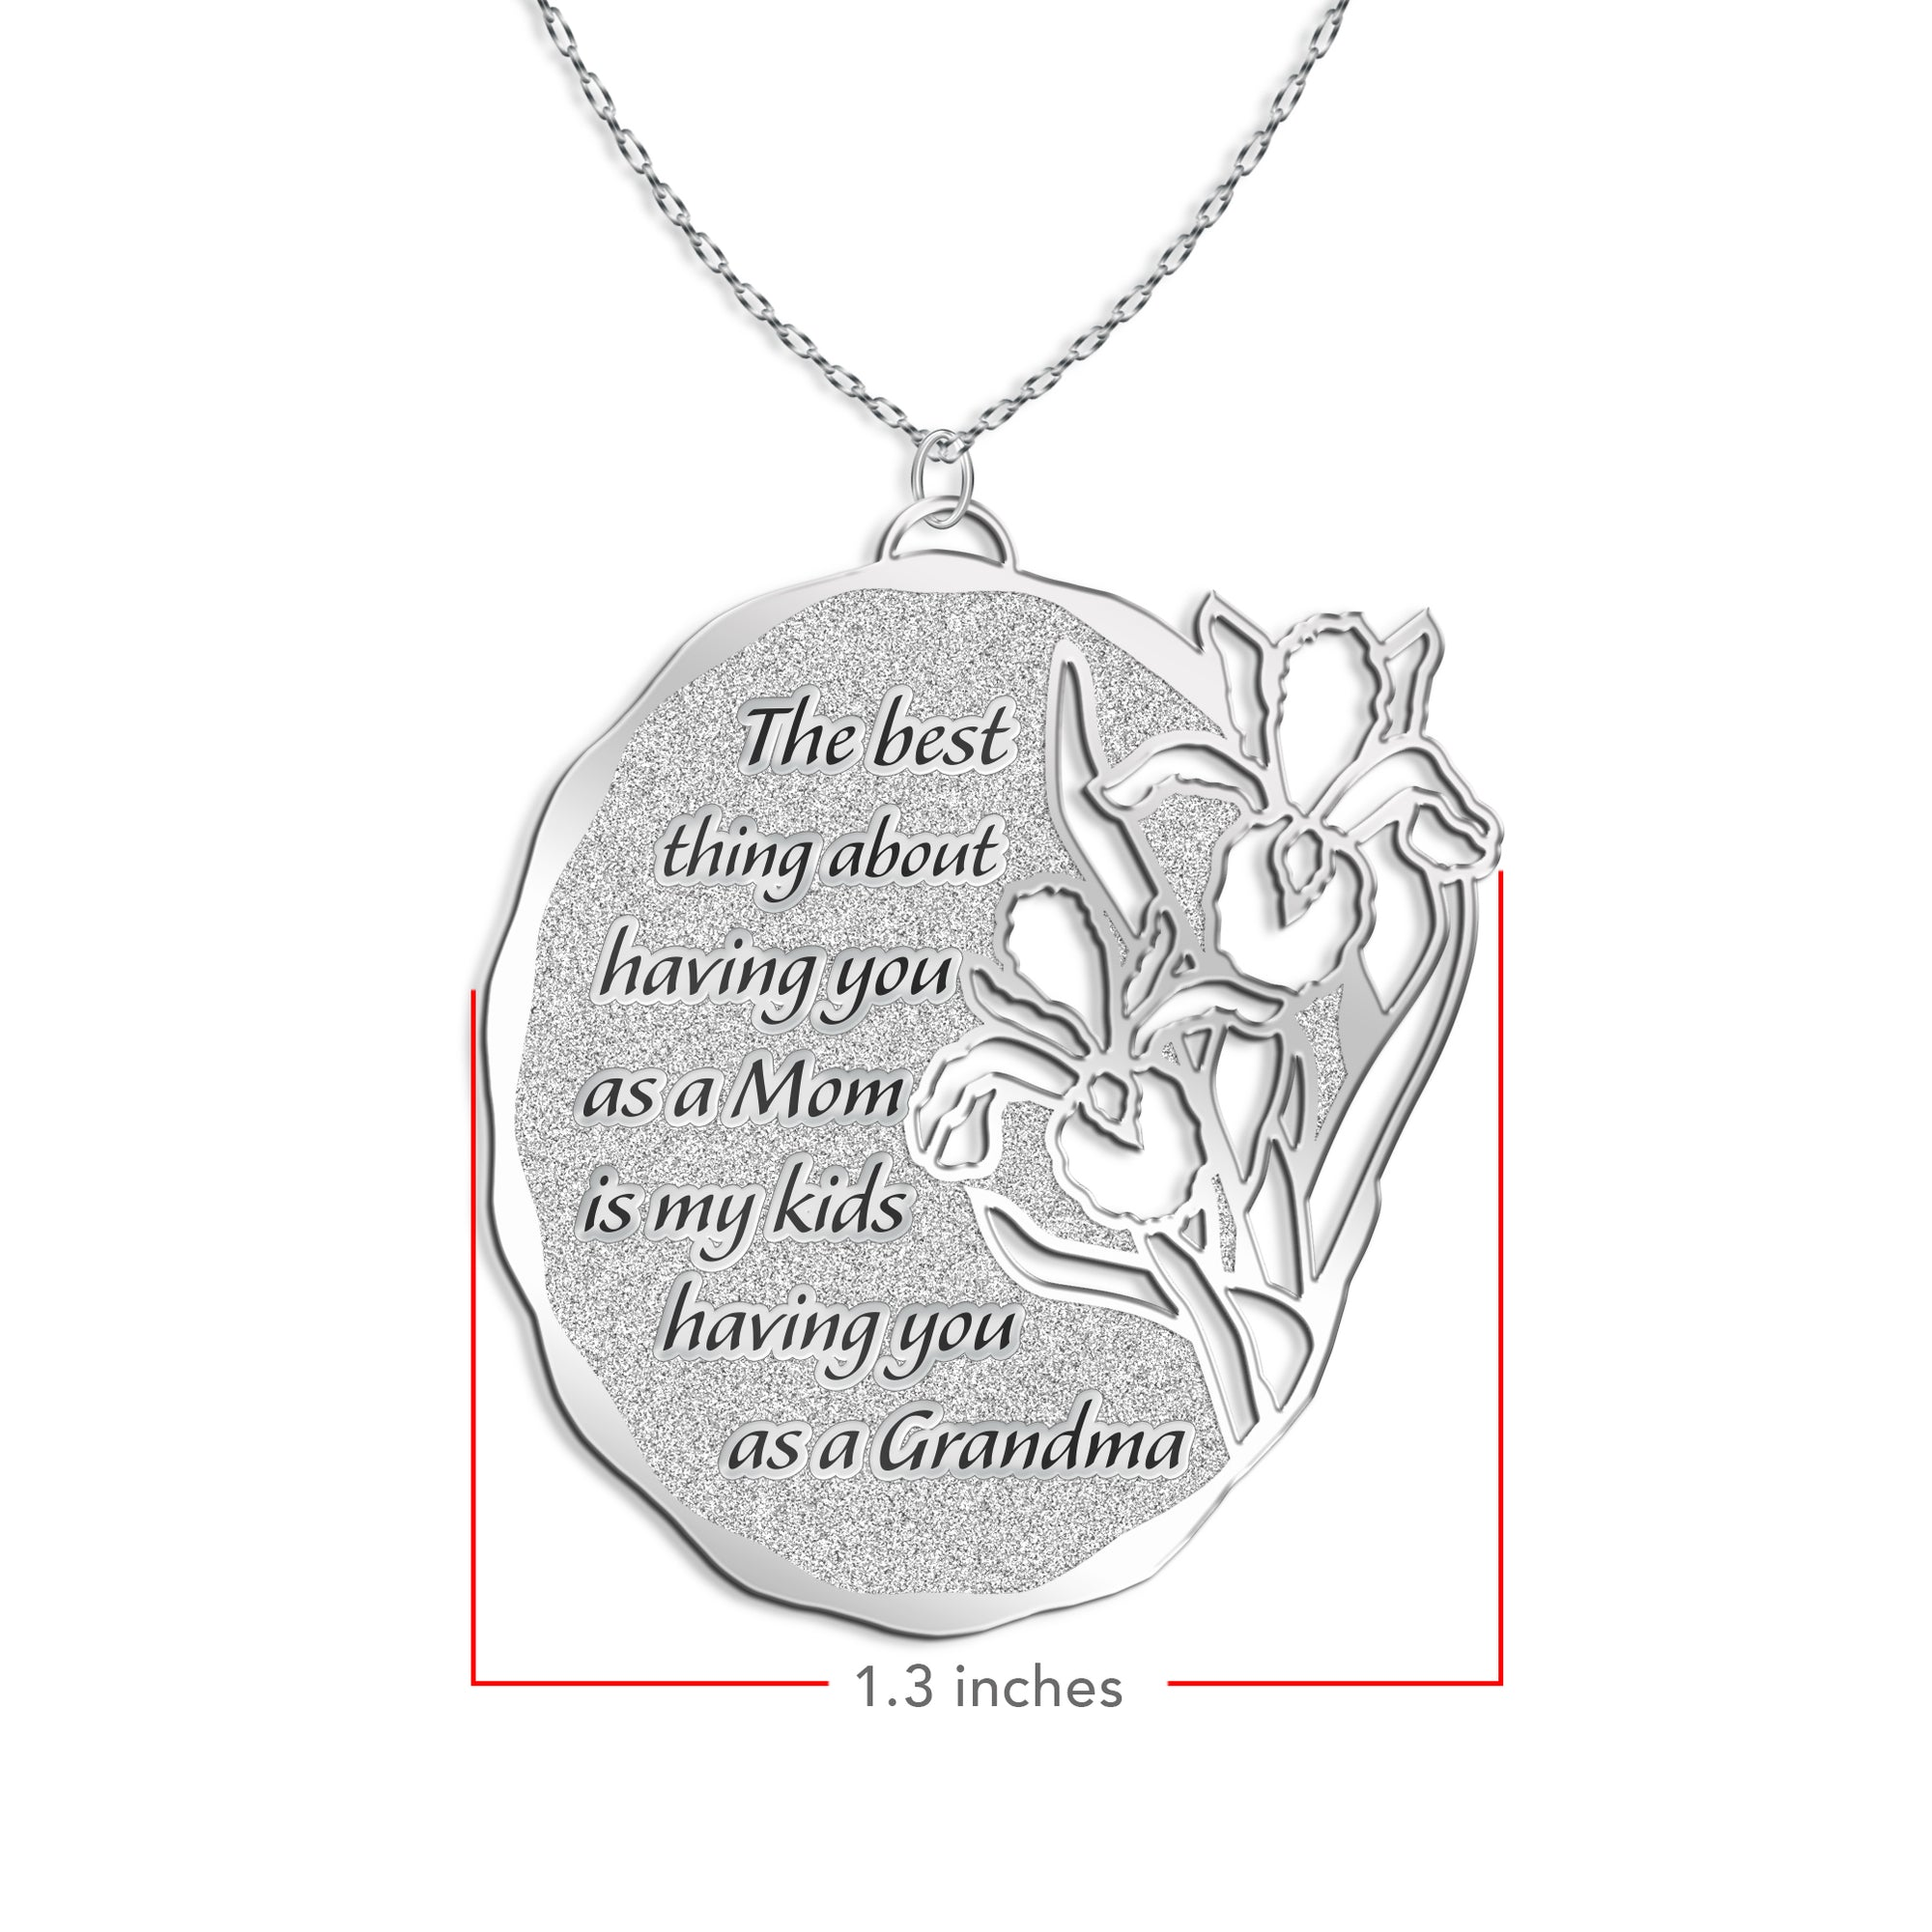 Grandma Necklace The Best Grandma Gift Ever Tell Me A Charm